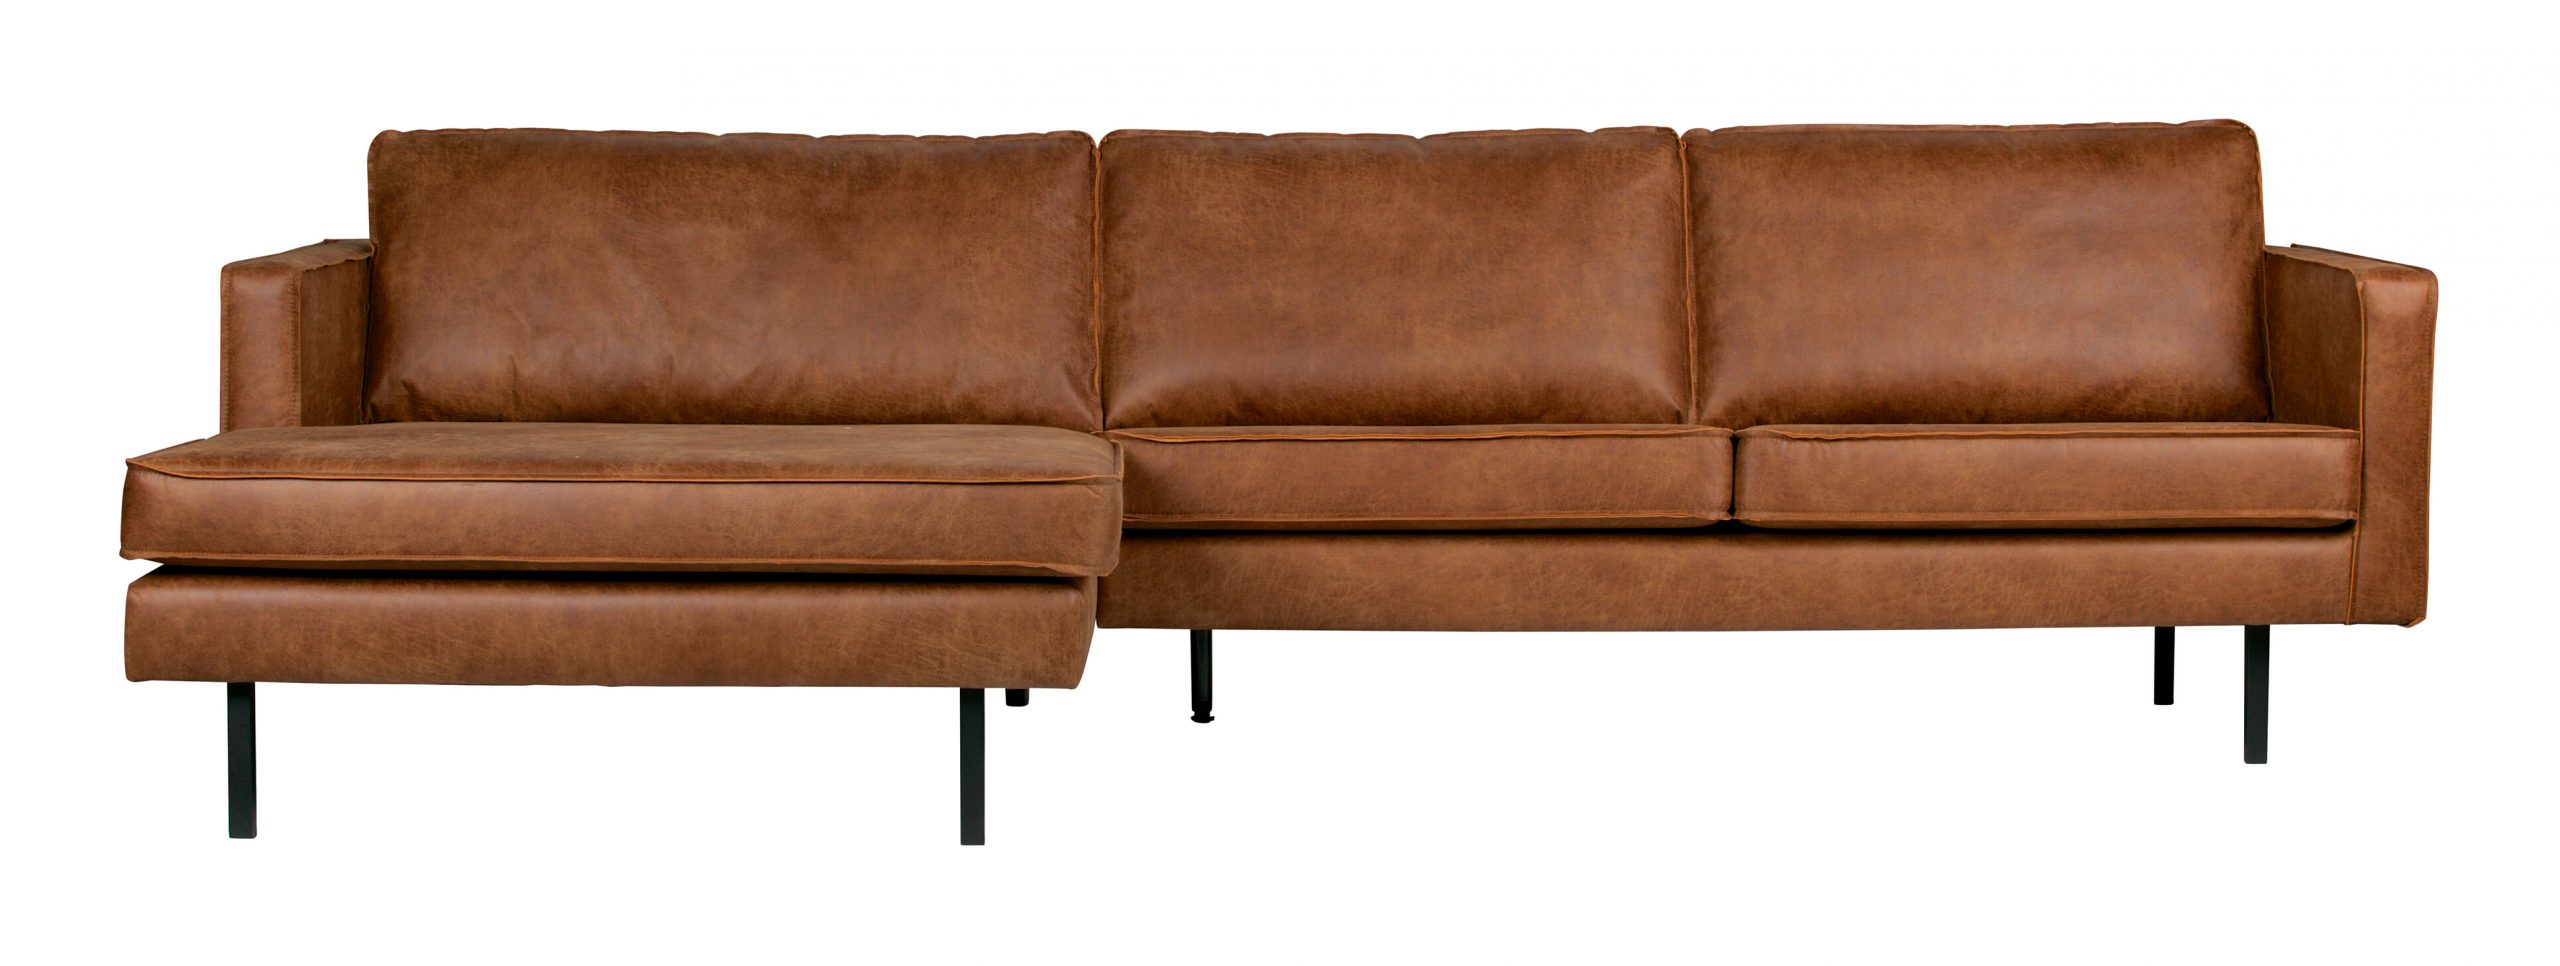 BePureHome Loungebank 'Rodeo' Links, Eco Leder, kleur Cognac | BePureHome